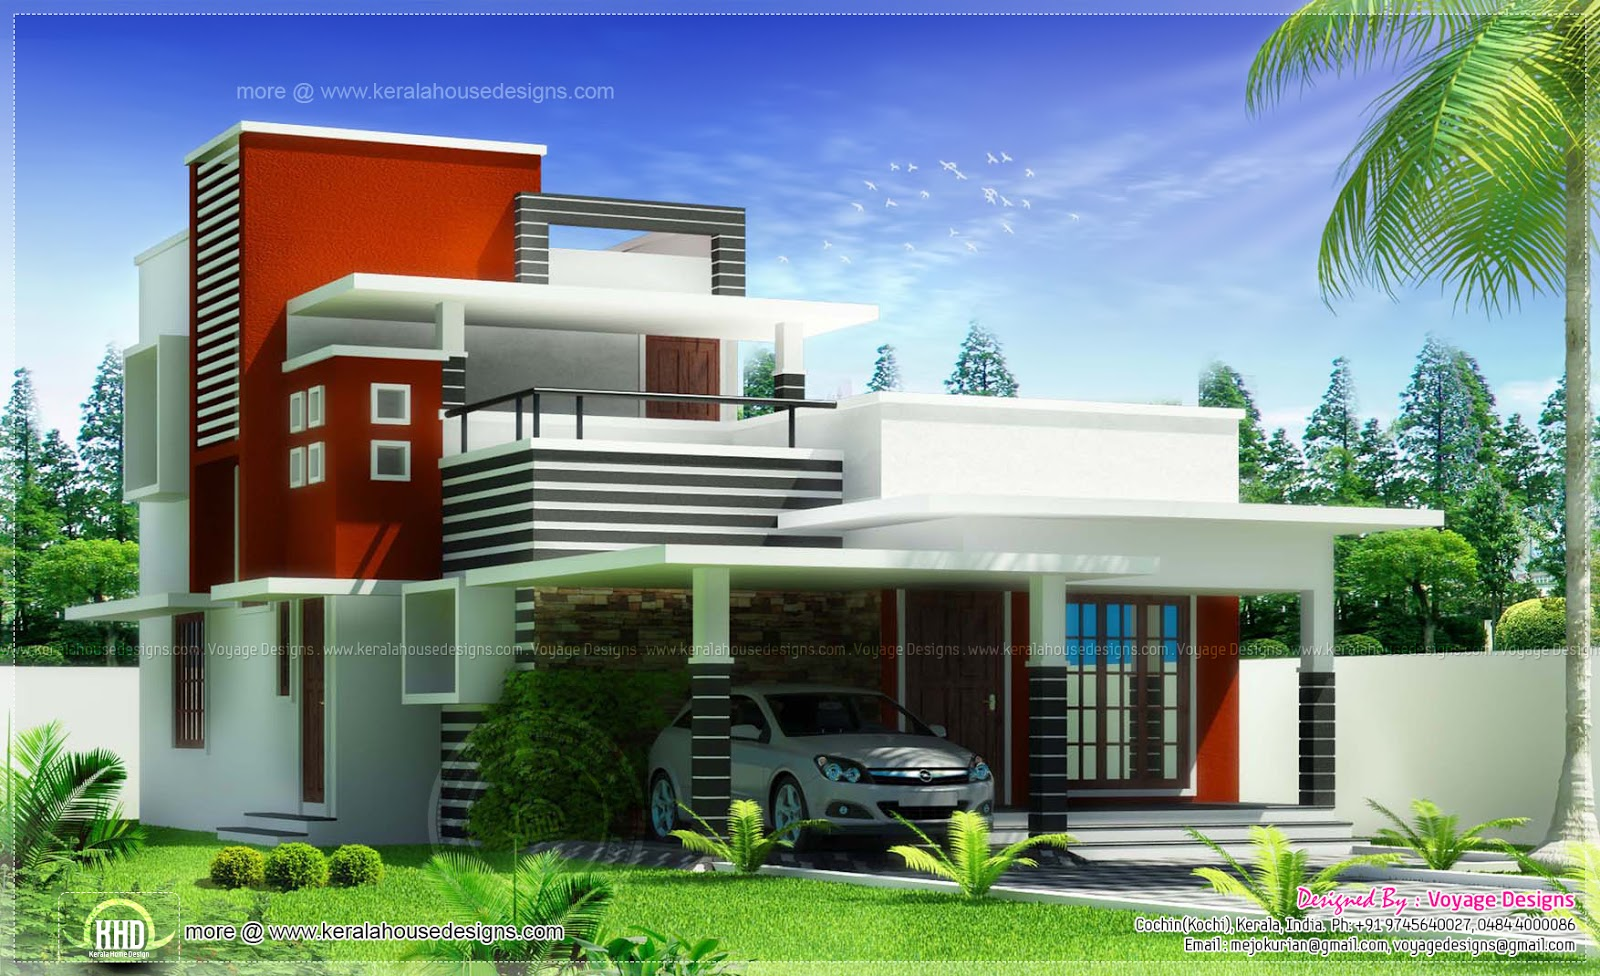 3 bed room contemporary style house home kerala plans House and home designs